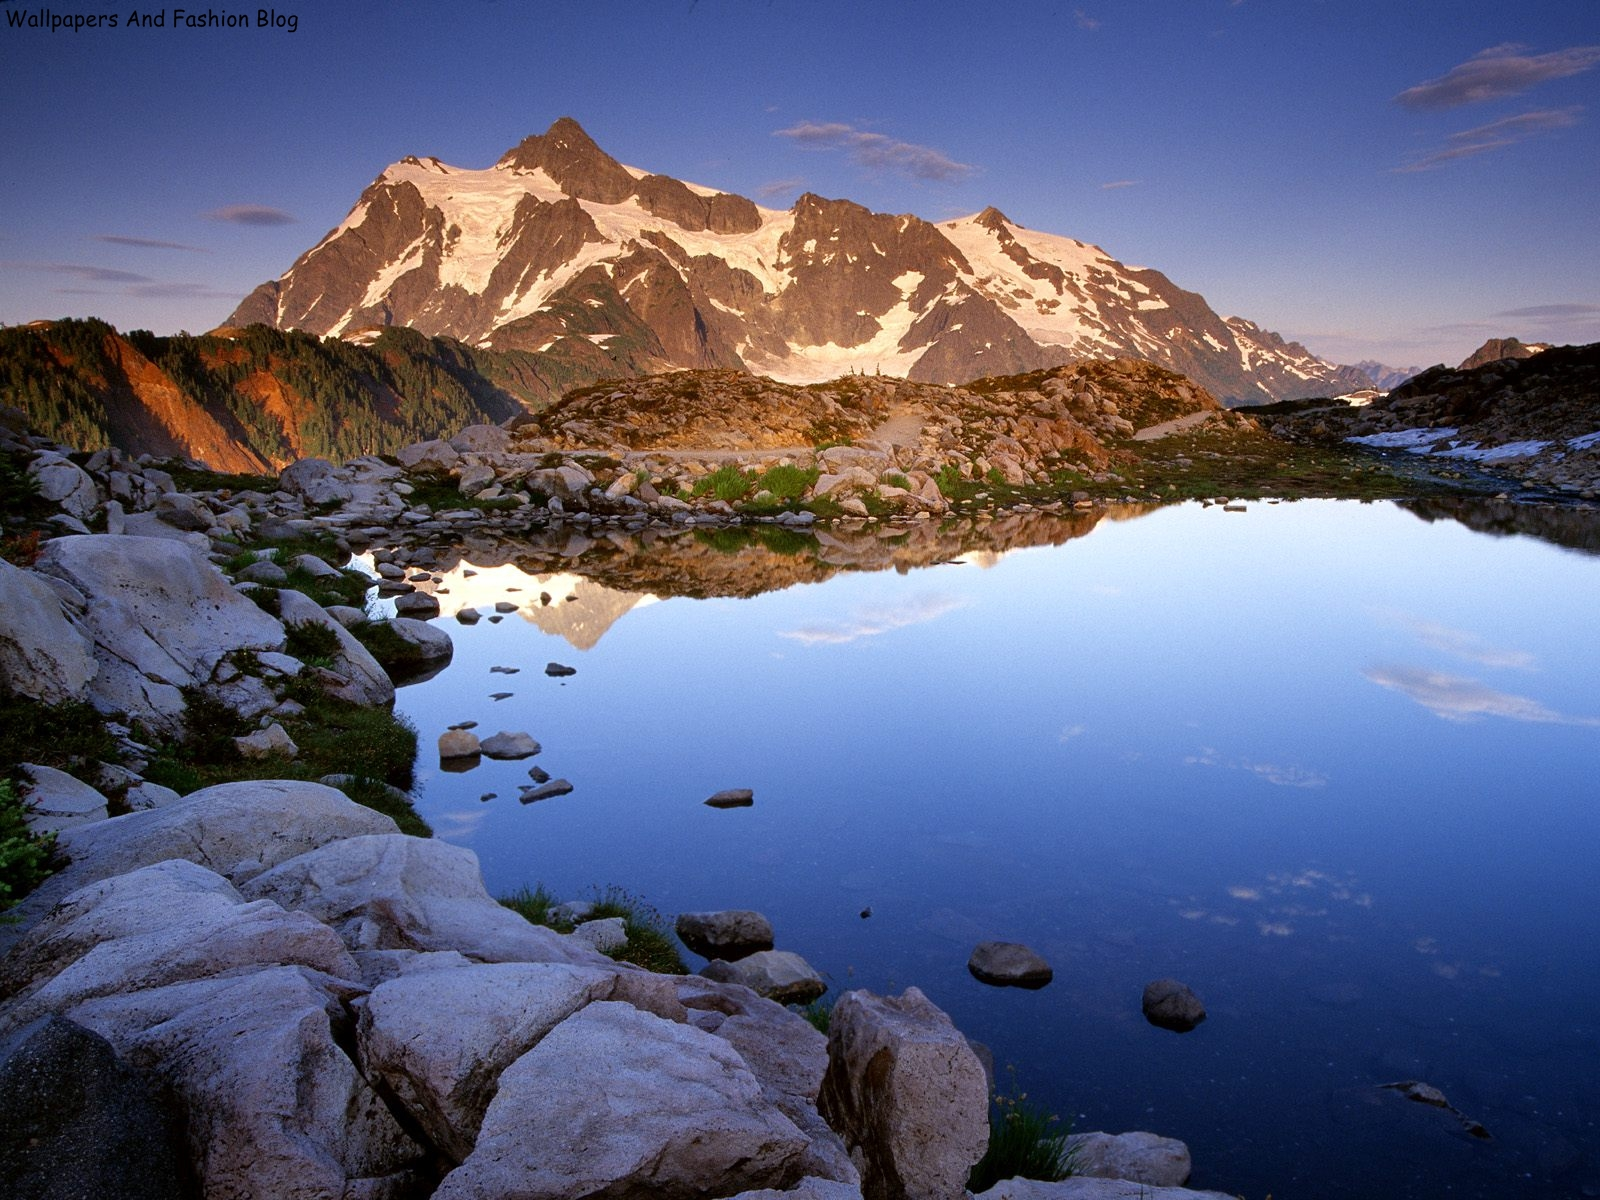 http://1.bp.blogspot.com/-6zv7LKseyBI/UCxXZYZJ_hI/AAAAAAAAEVU/RCse0Q_OVP4/s1600/Mount+Shuksan+at+Sunset,+Washington.jpg